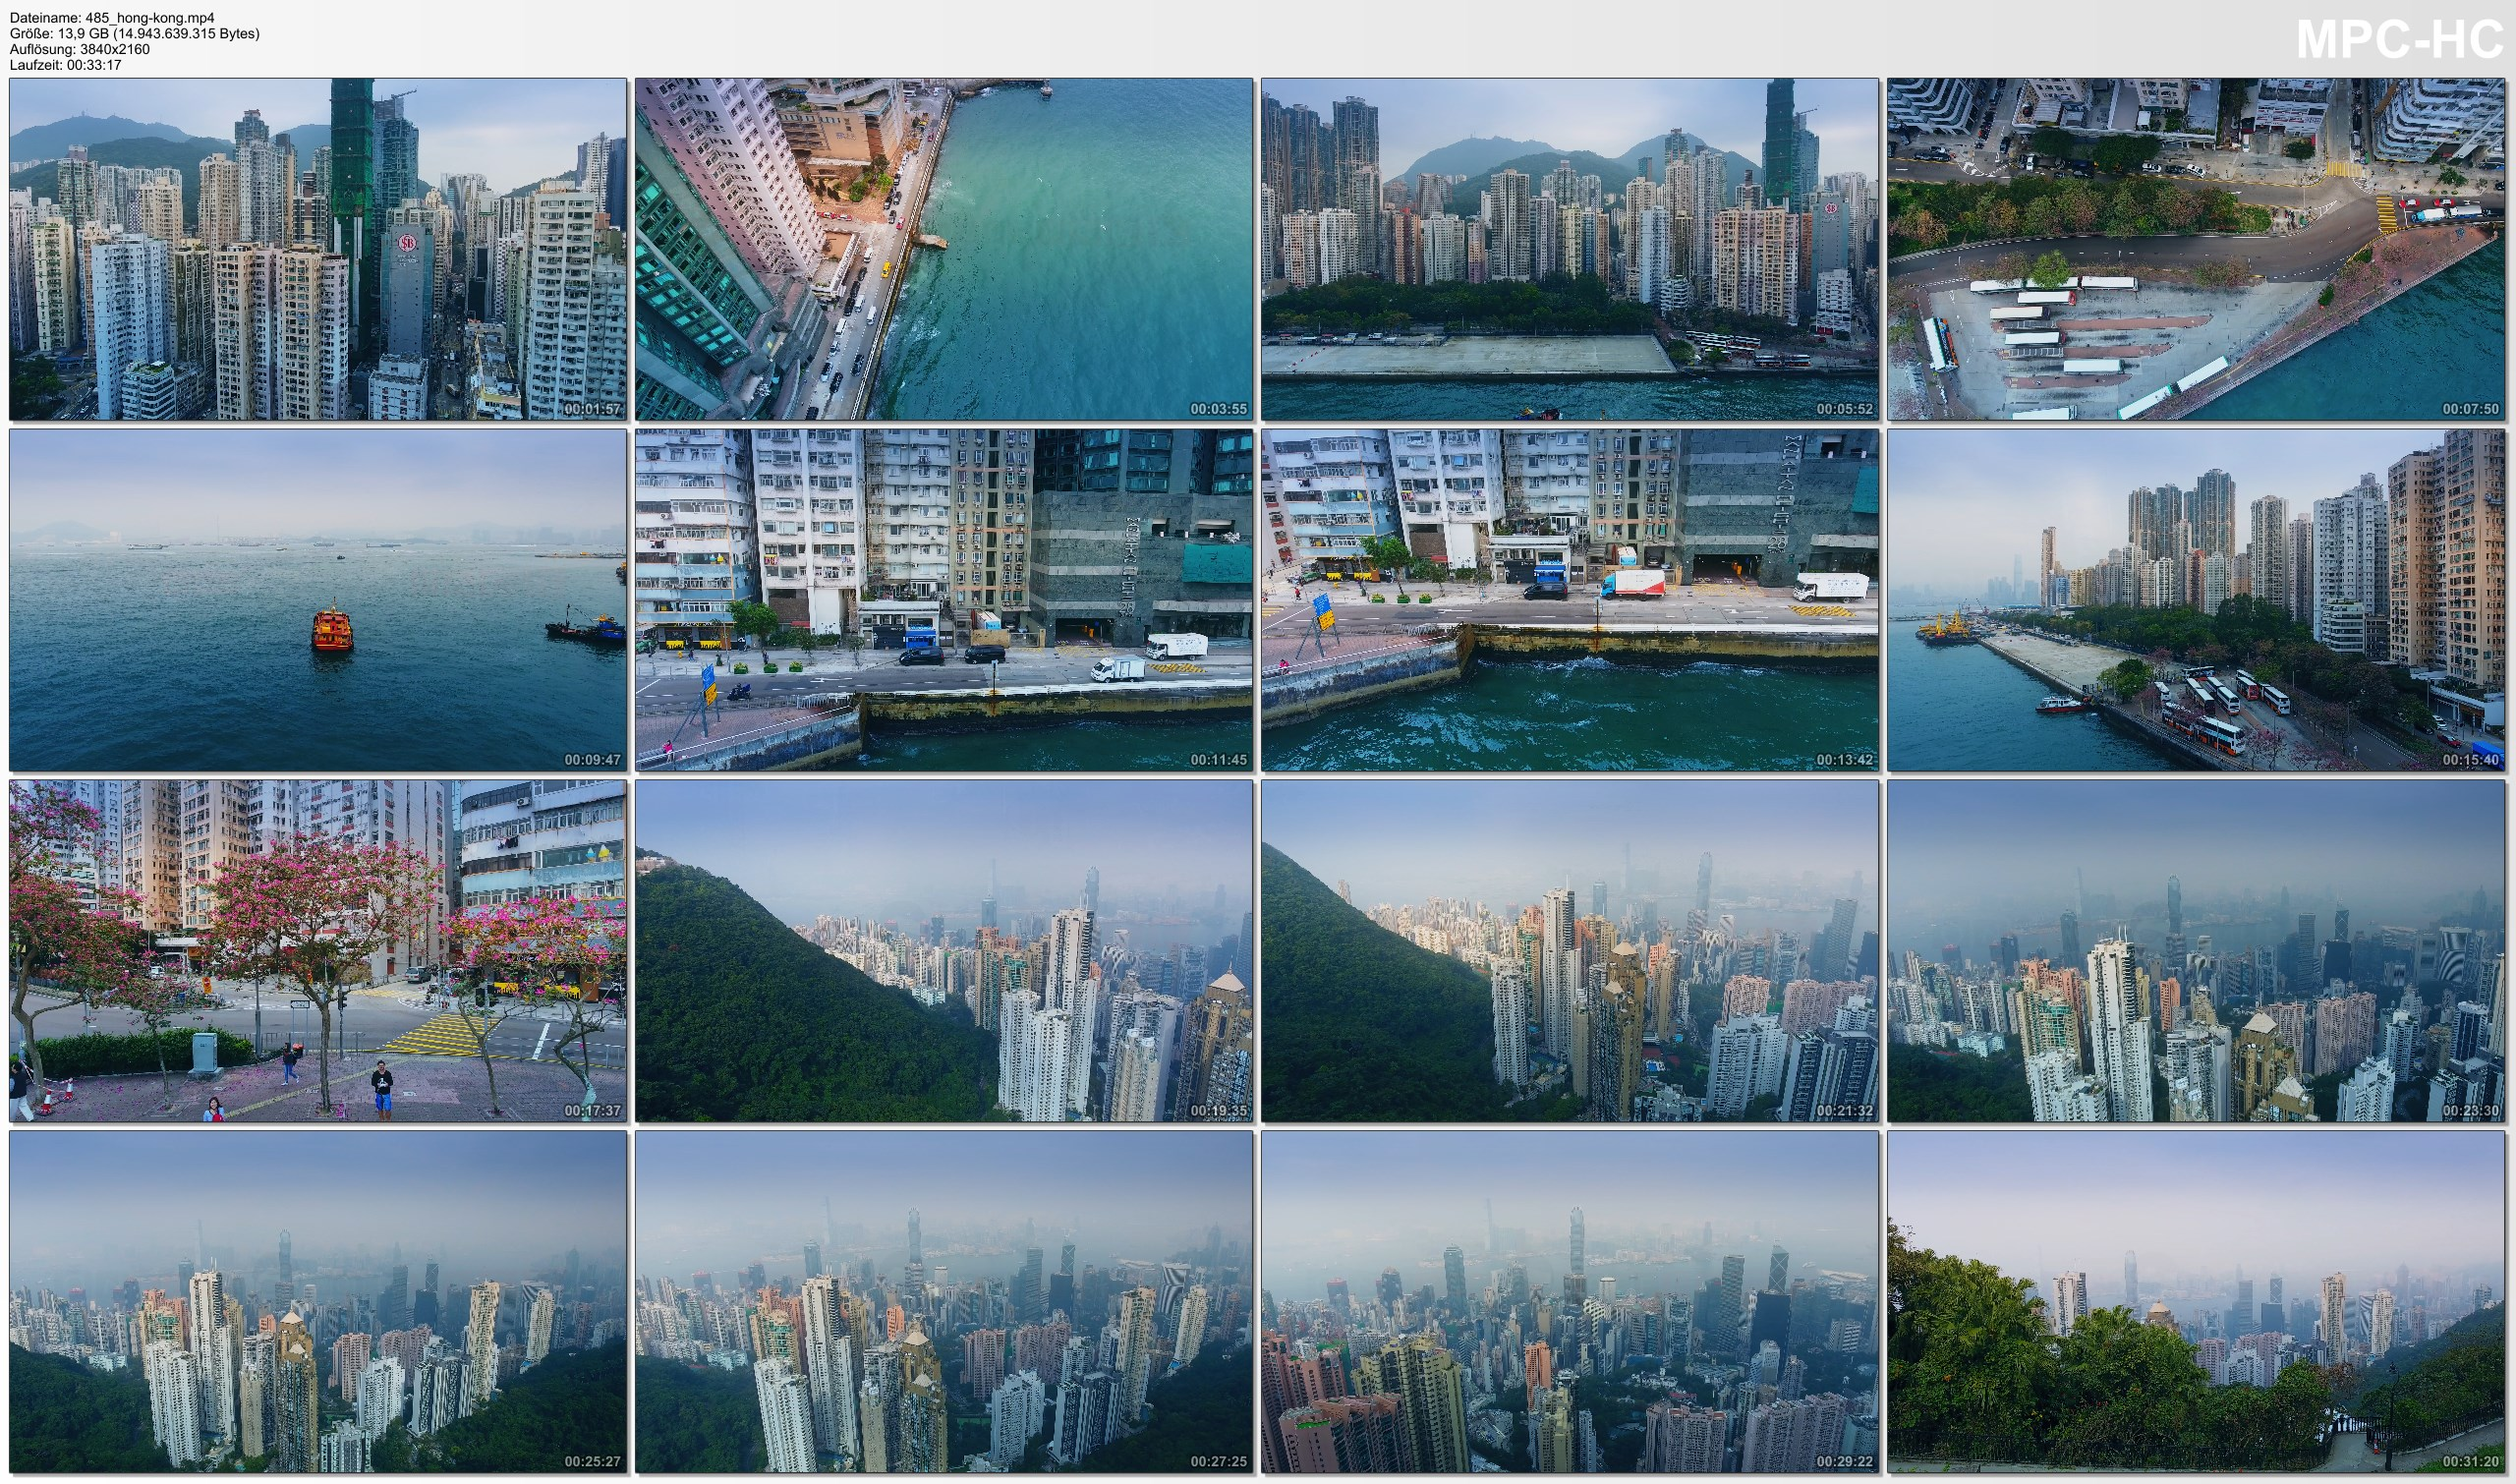 Drone Pictures from Video 【4K】Drone RAW Footage   This is HONG KONG 2020   Victorias Peak and More   UltraHD Stock Video